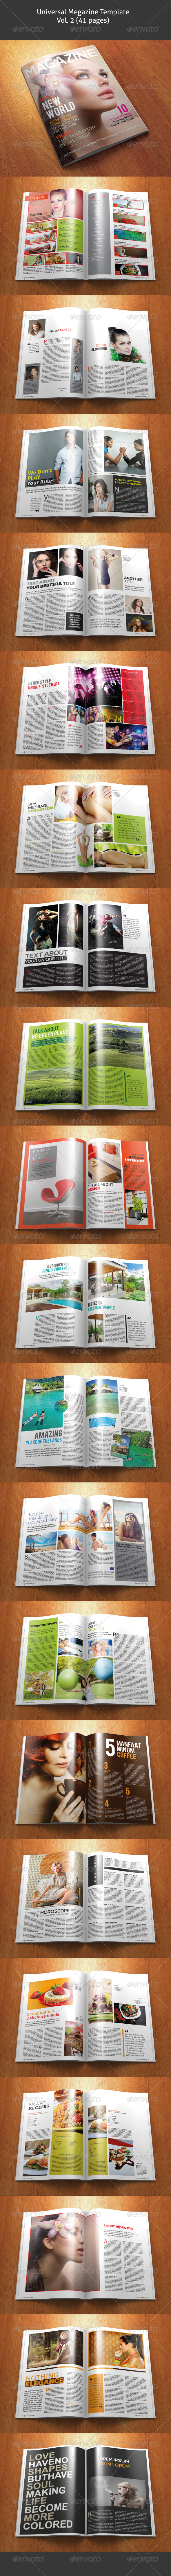 GraphicRiver Universal Magazine Template Vol 02 41 pages 4674631